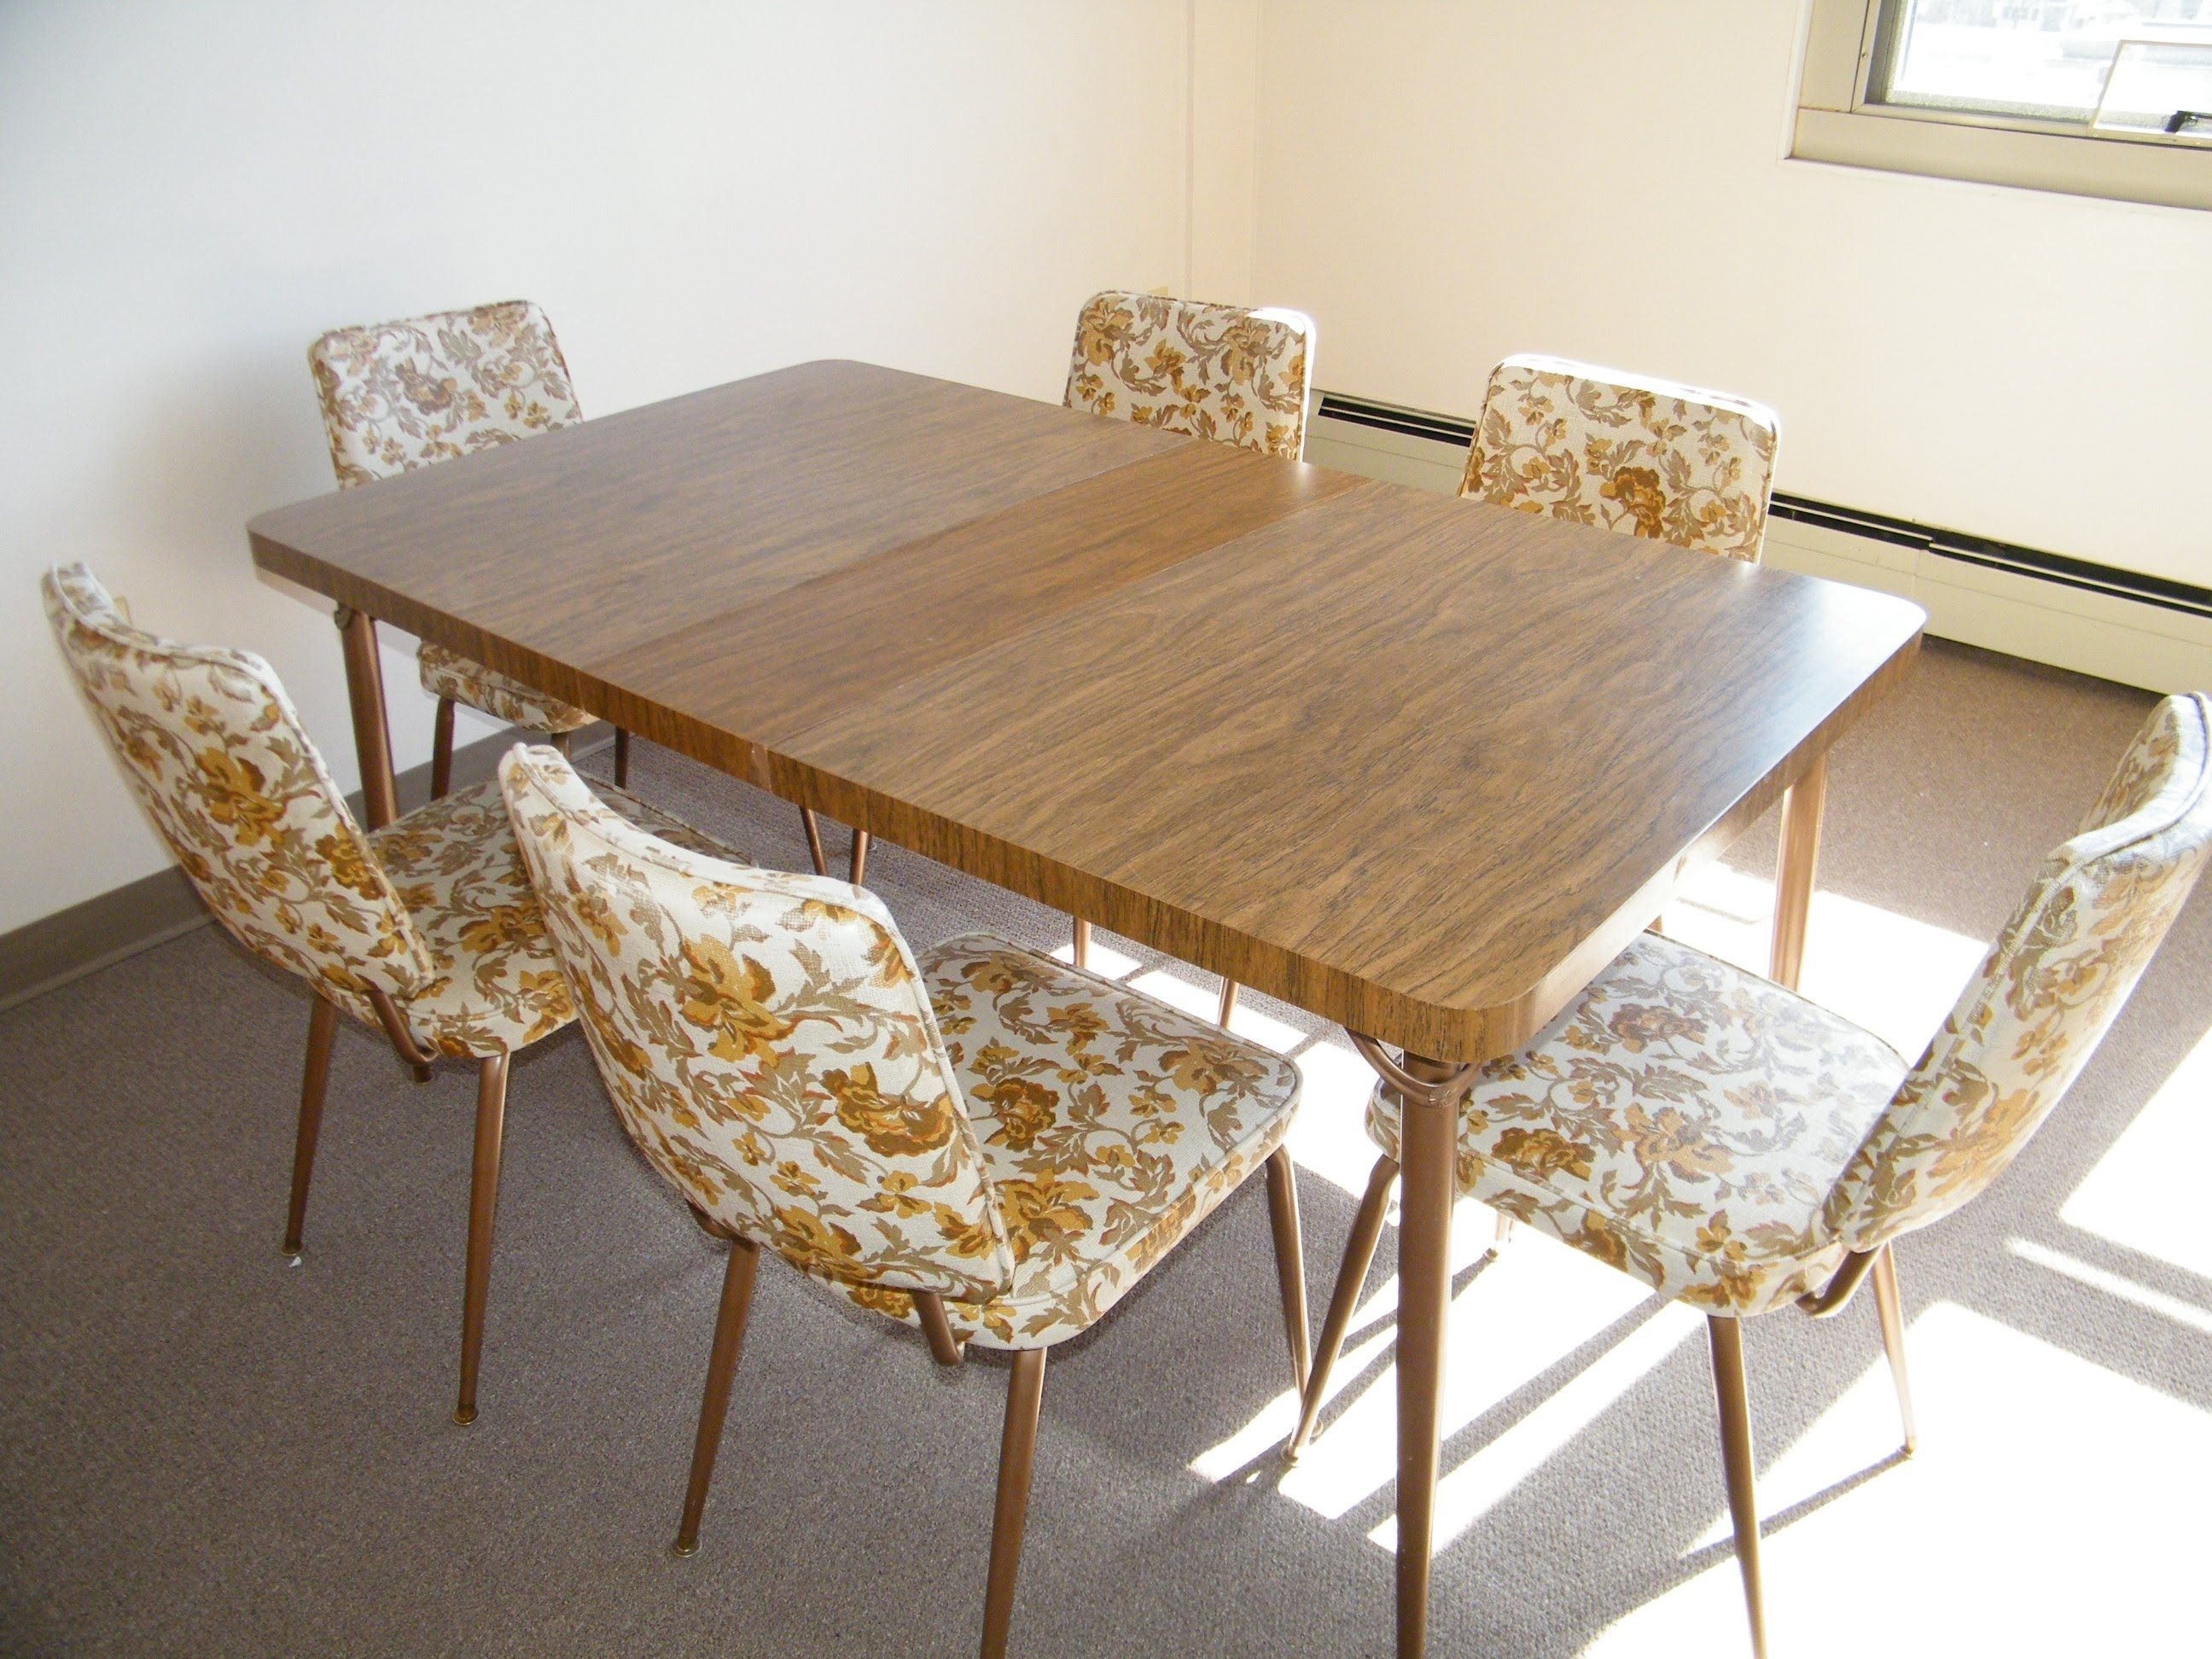 1960s Formica Kitchen Table And Chairs | http://sodakaustica.com ...